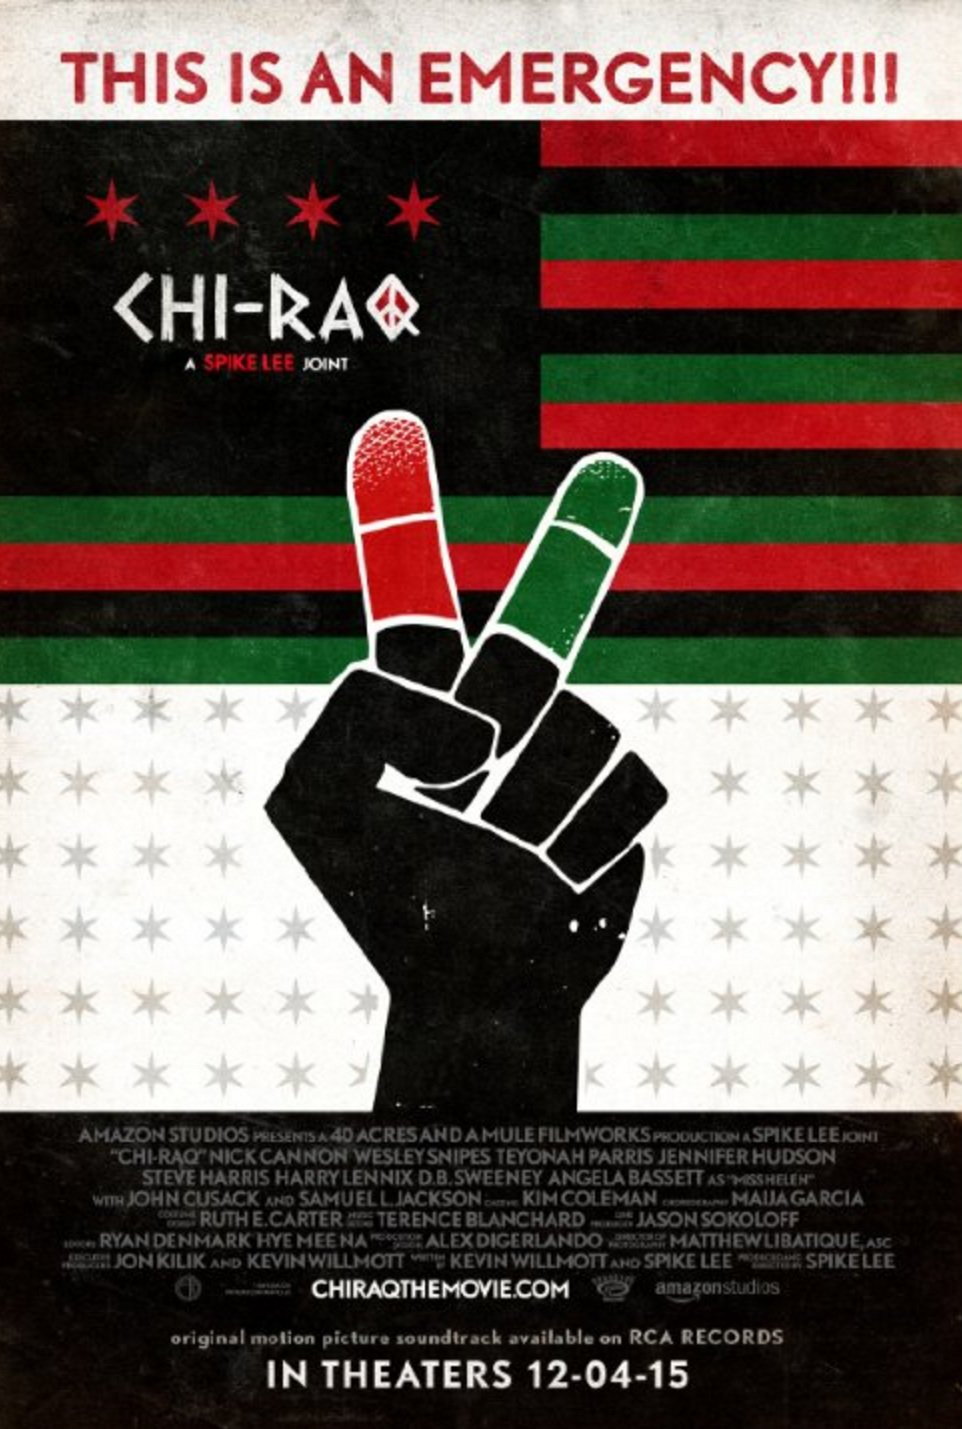 Spike Lee Tackles Gun Violence Head On In Debut Trailer For Chiraq